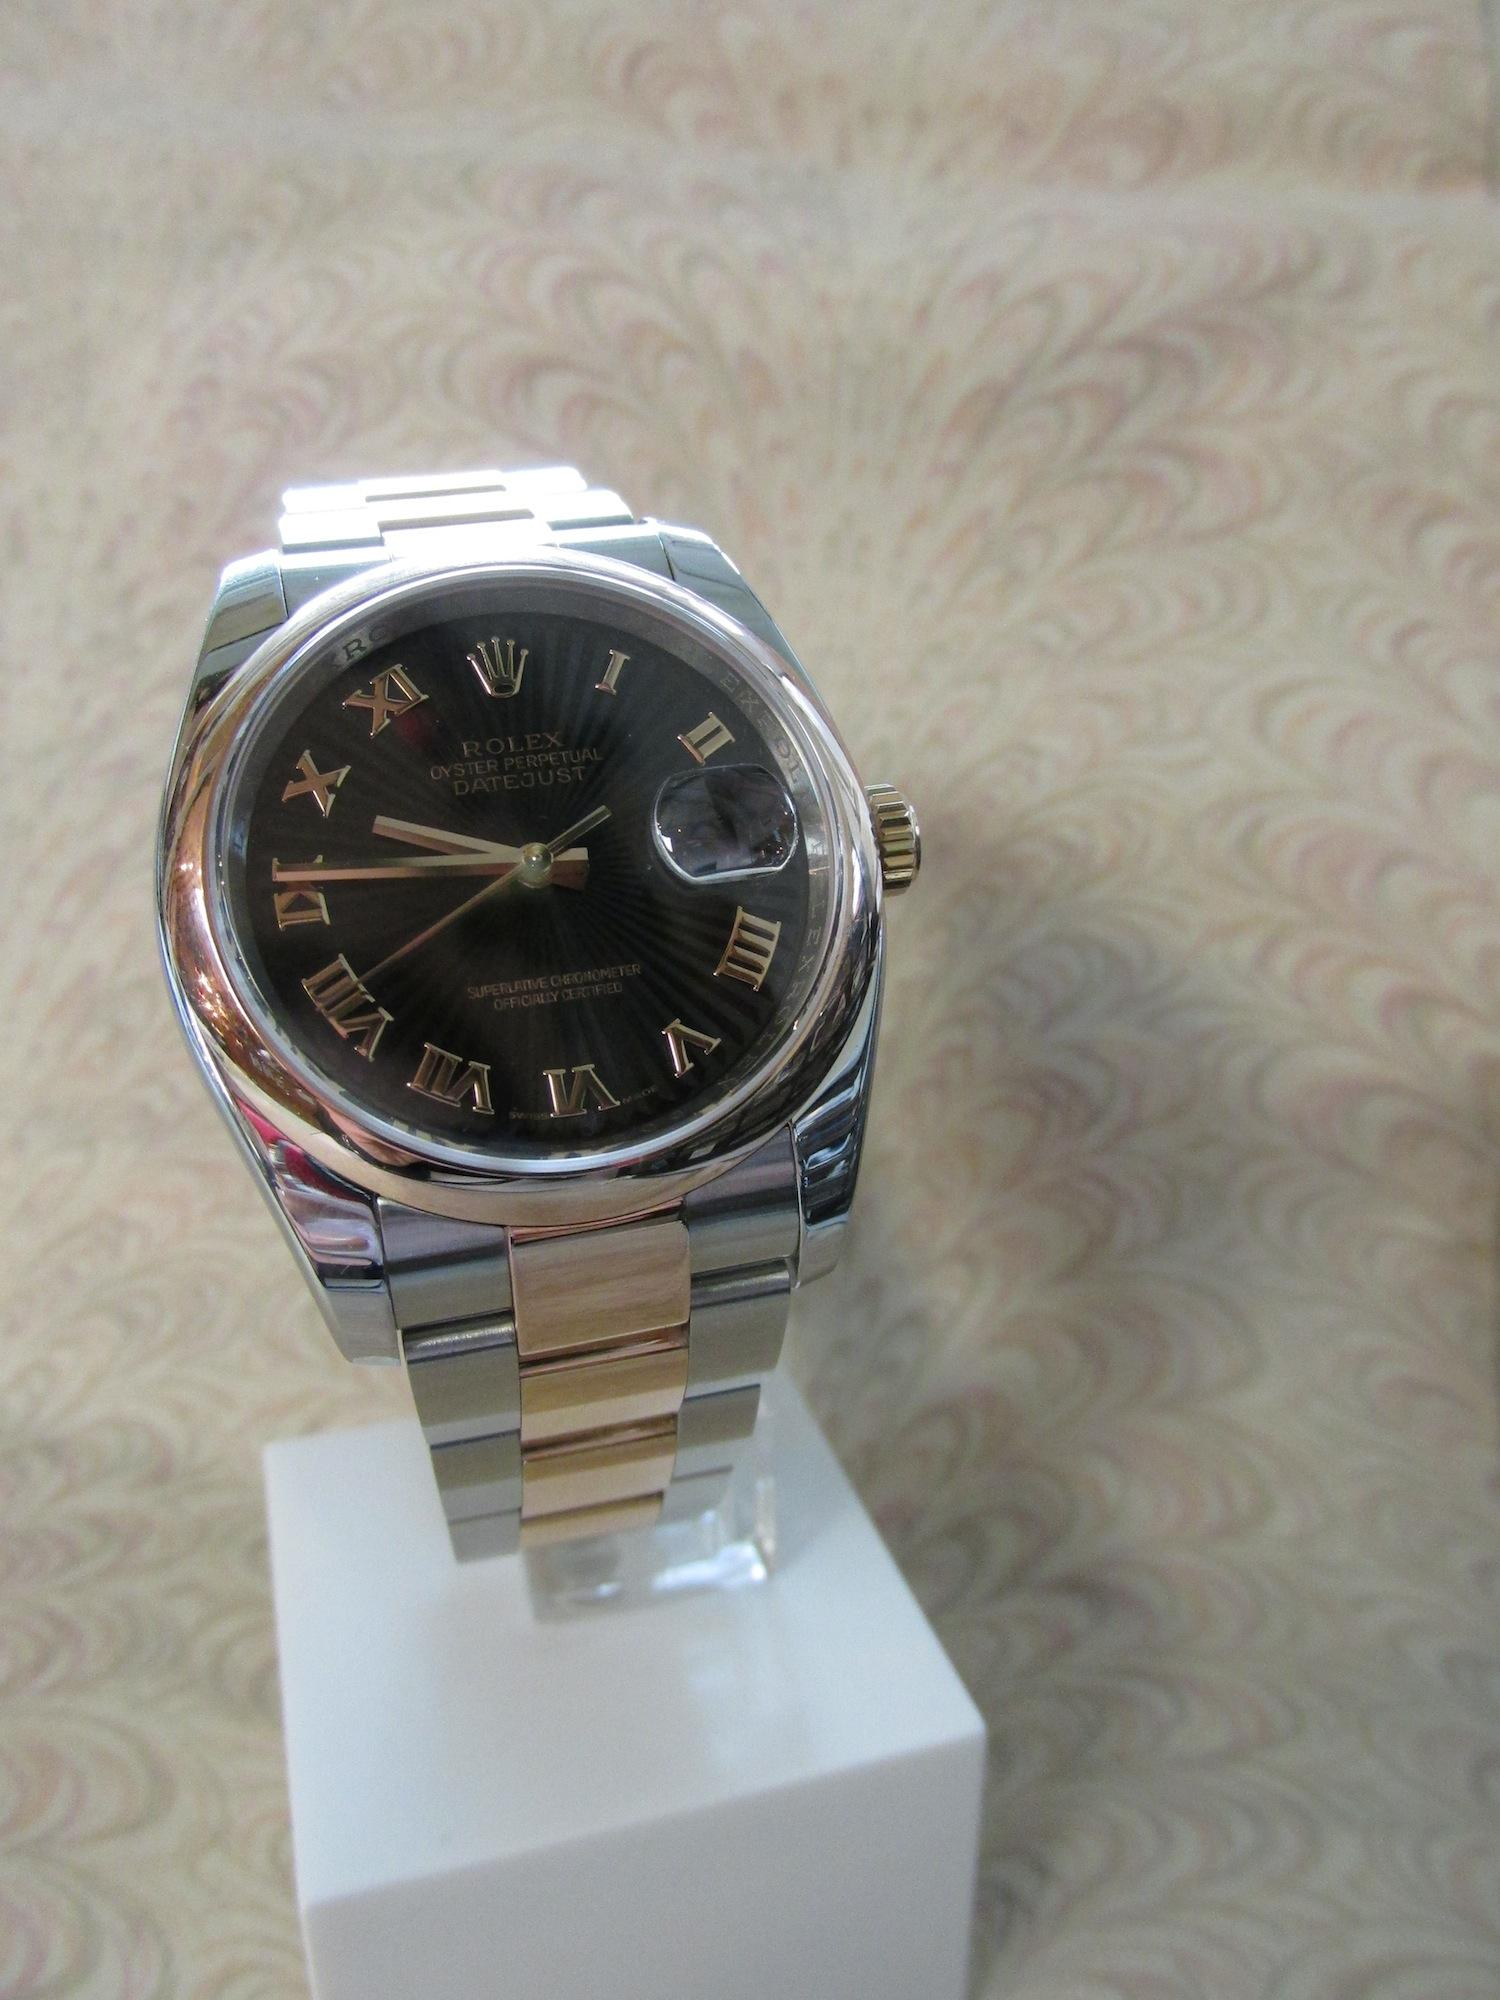 2005 Reconditioned Rolex